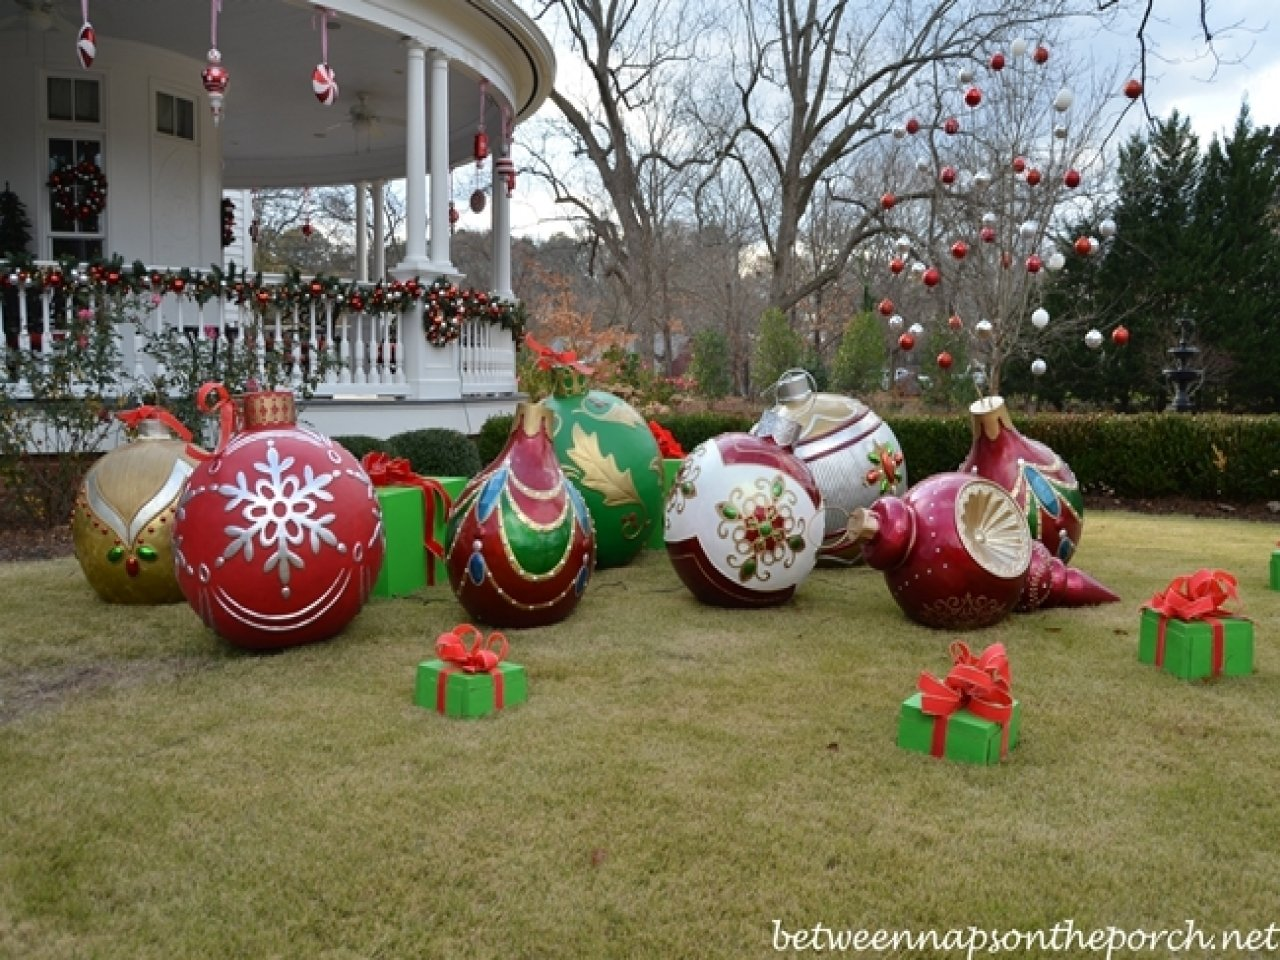 10 Ideal Diy Outdoor Christmas Decorating Ideas christmas bestdoor decorations for decorating ideas on full size of 2021